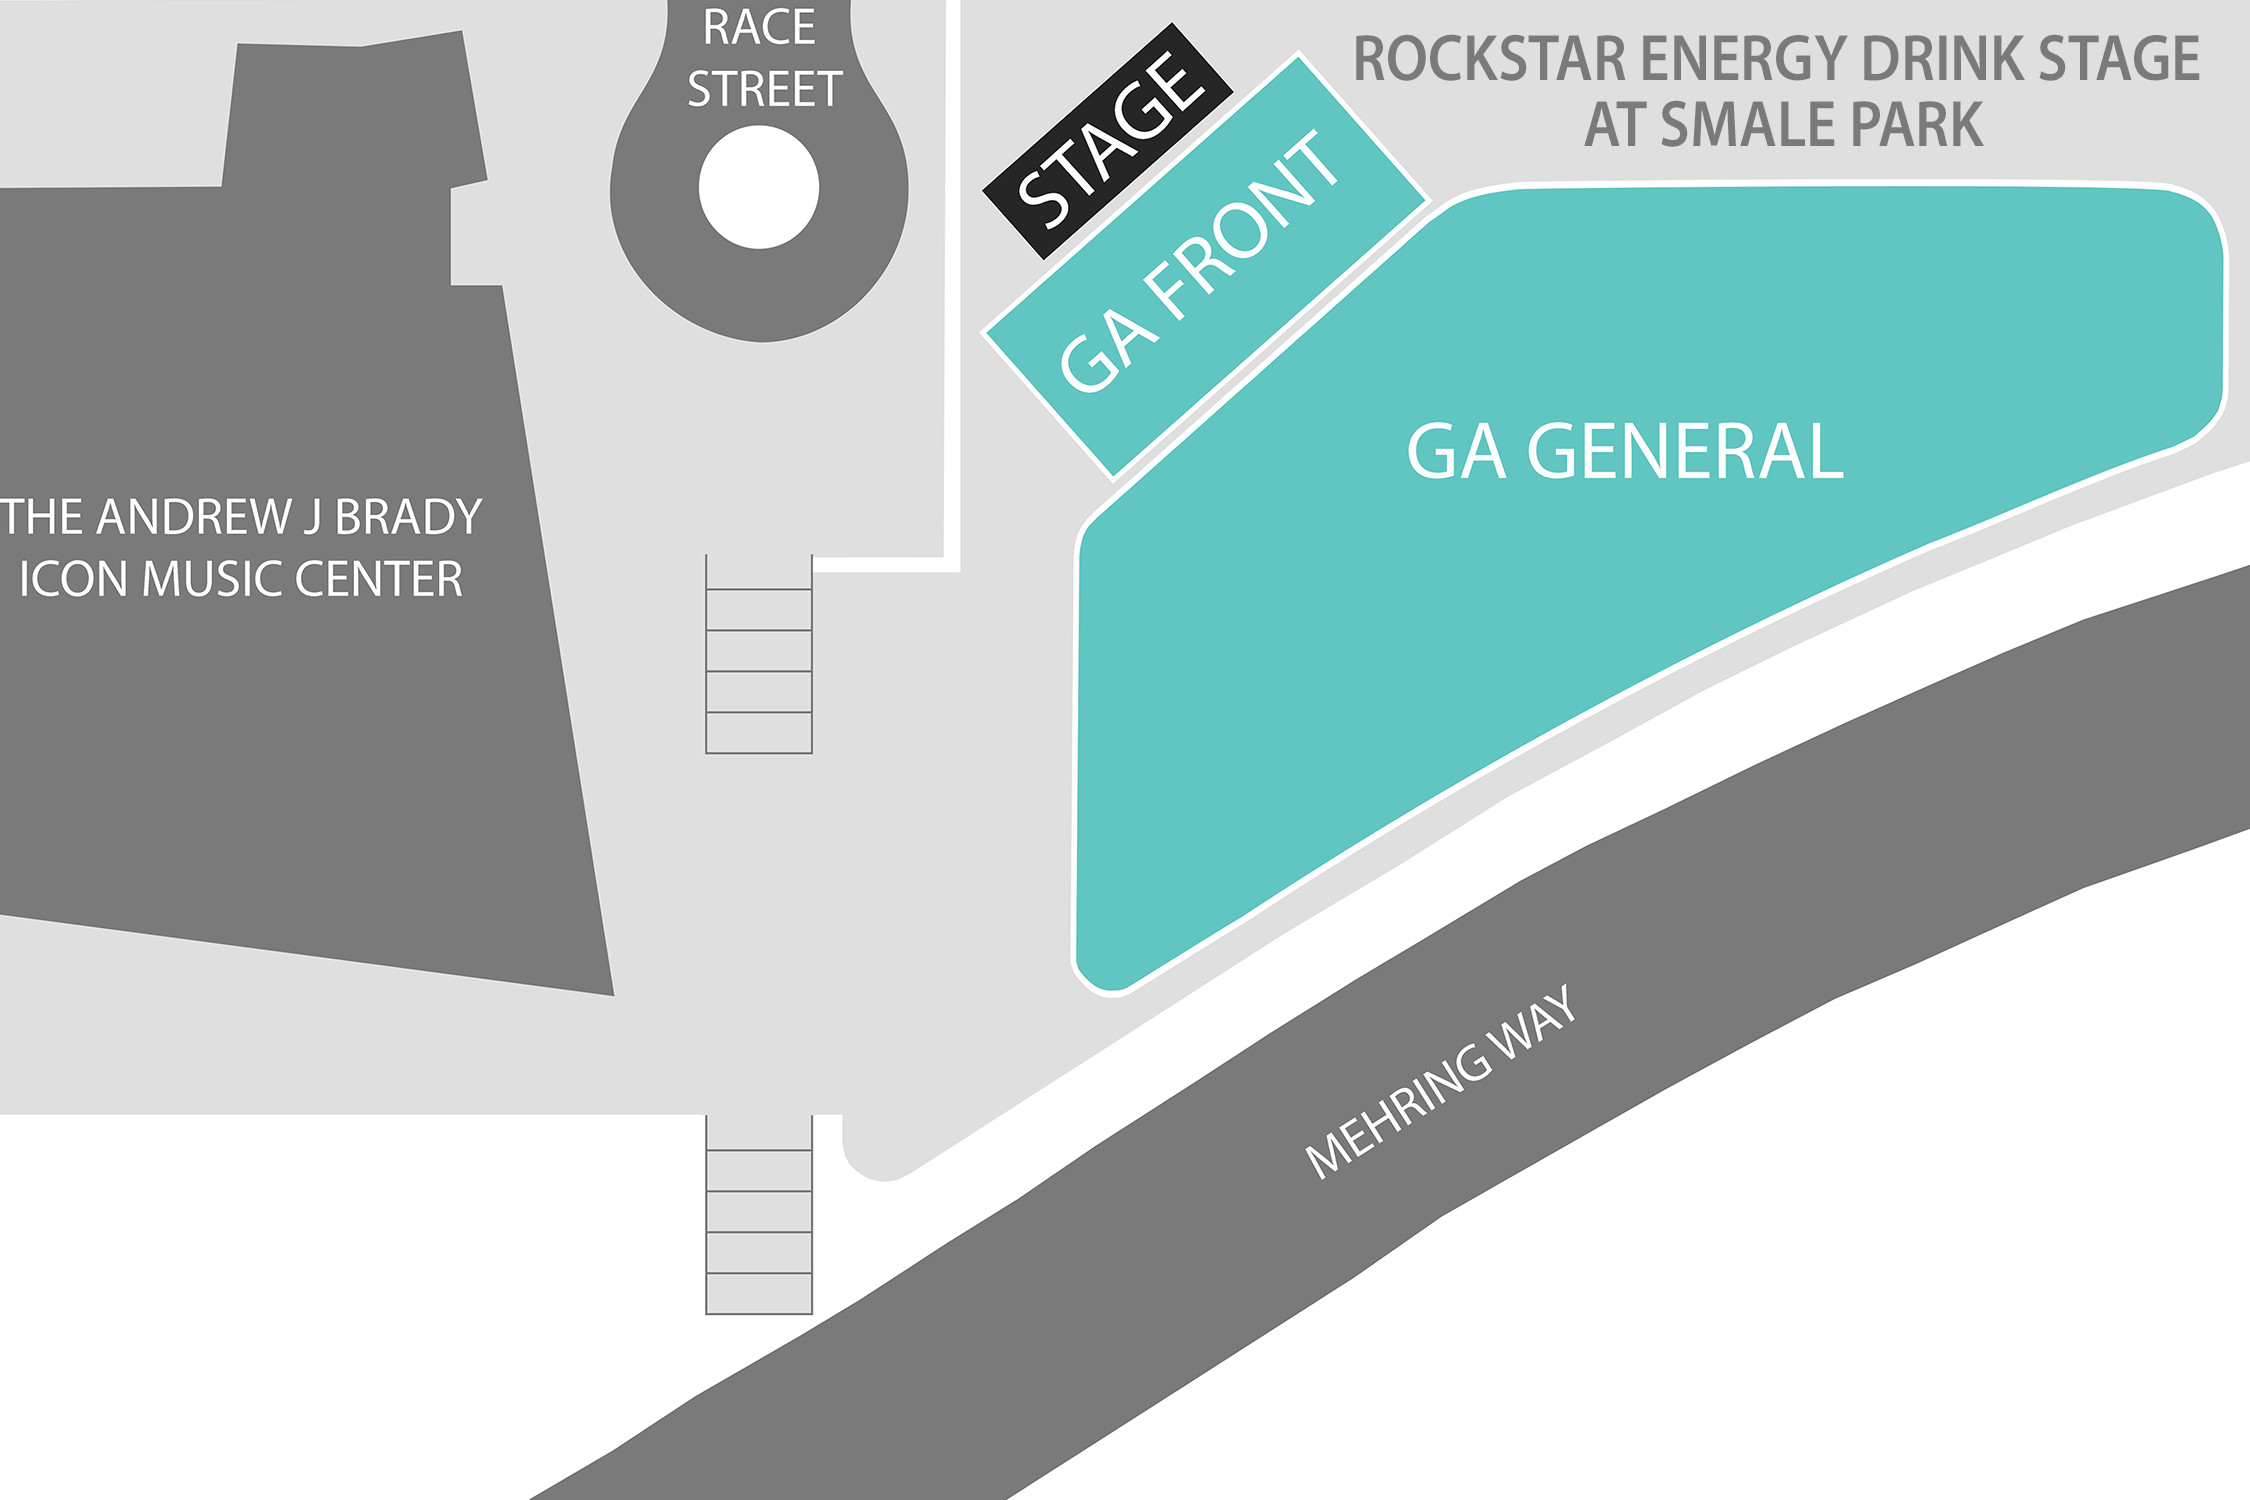 Rockstar Stage Energy Drink Stage at Smale Park - General Admission Front